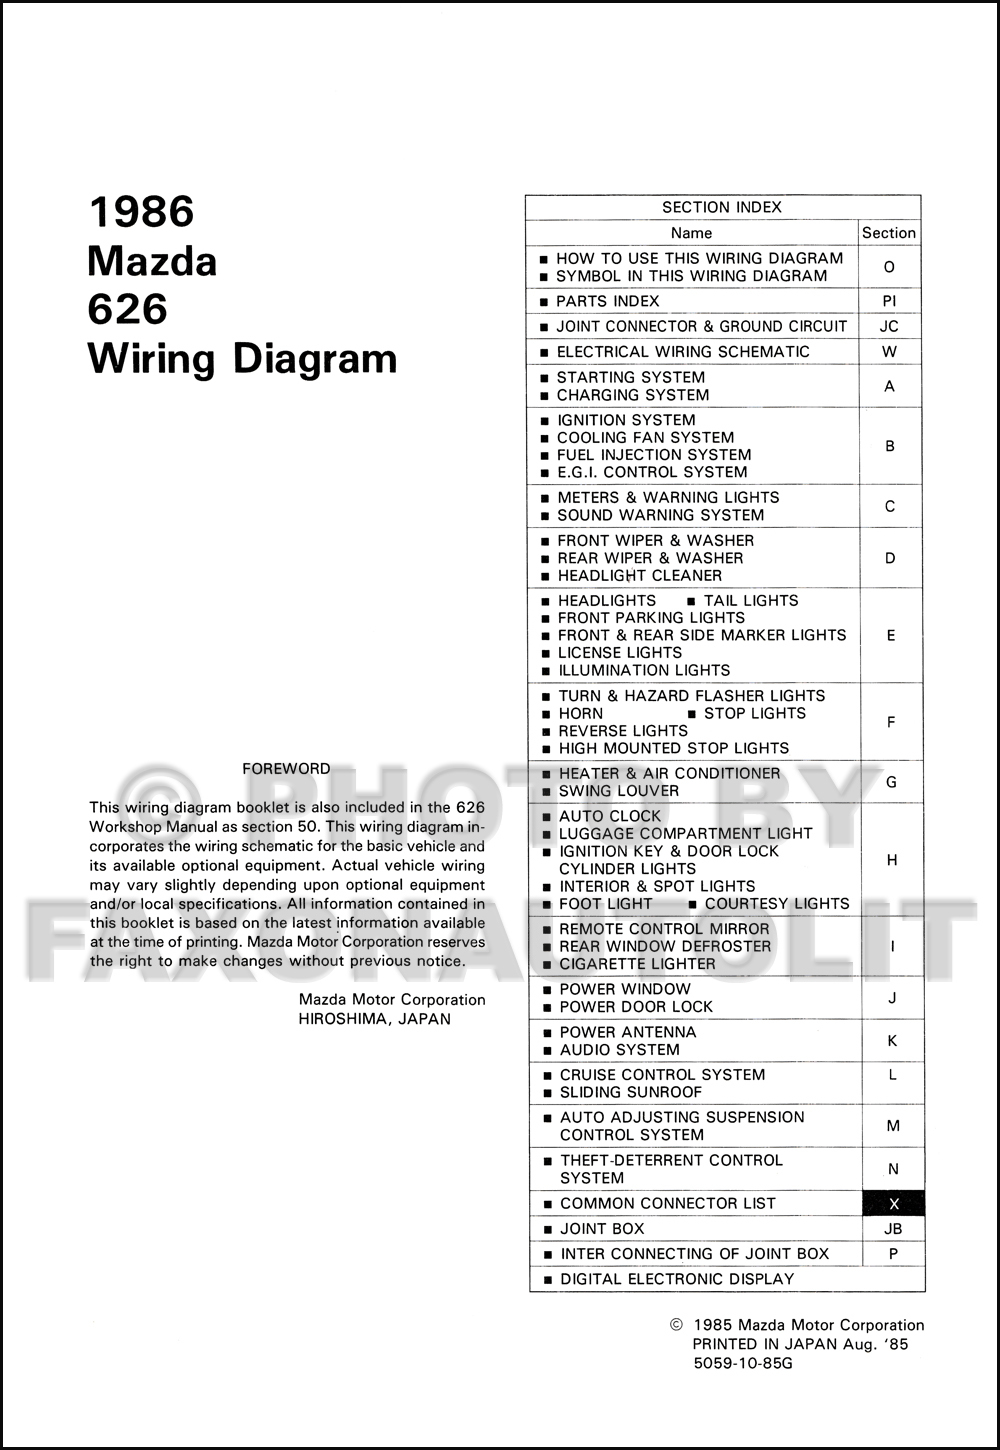 Diagram 1981 Mazda 626 Wiring Diagram Manual Original Full Version Hd Quality Manual Original Footdiagrams Creasitionline It